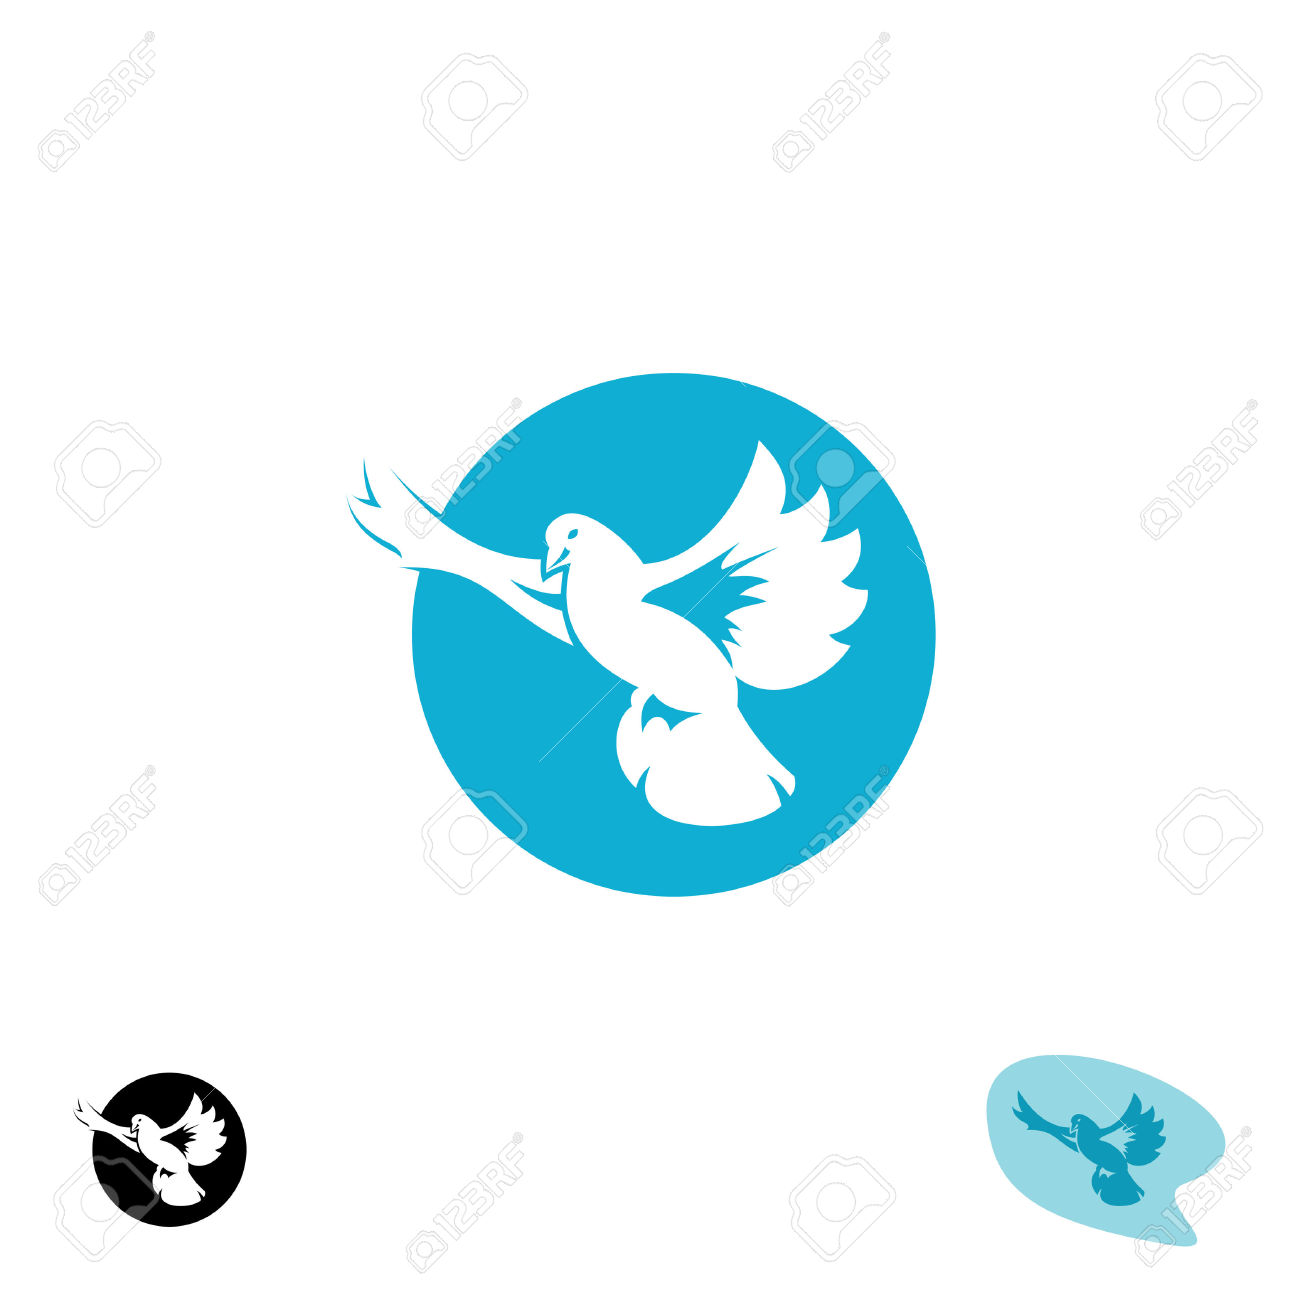 123,319 Bird Icon Stock Vector Illustration And Royalty Free Bird.